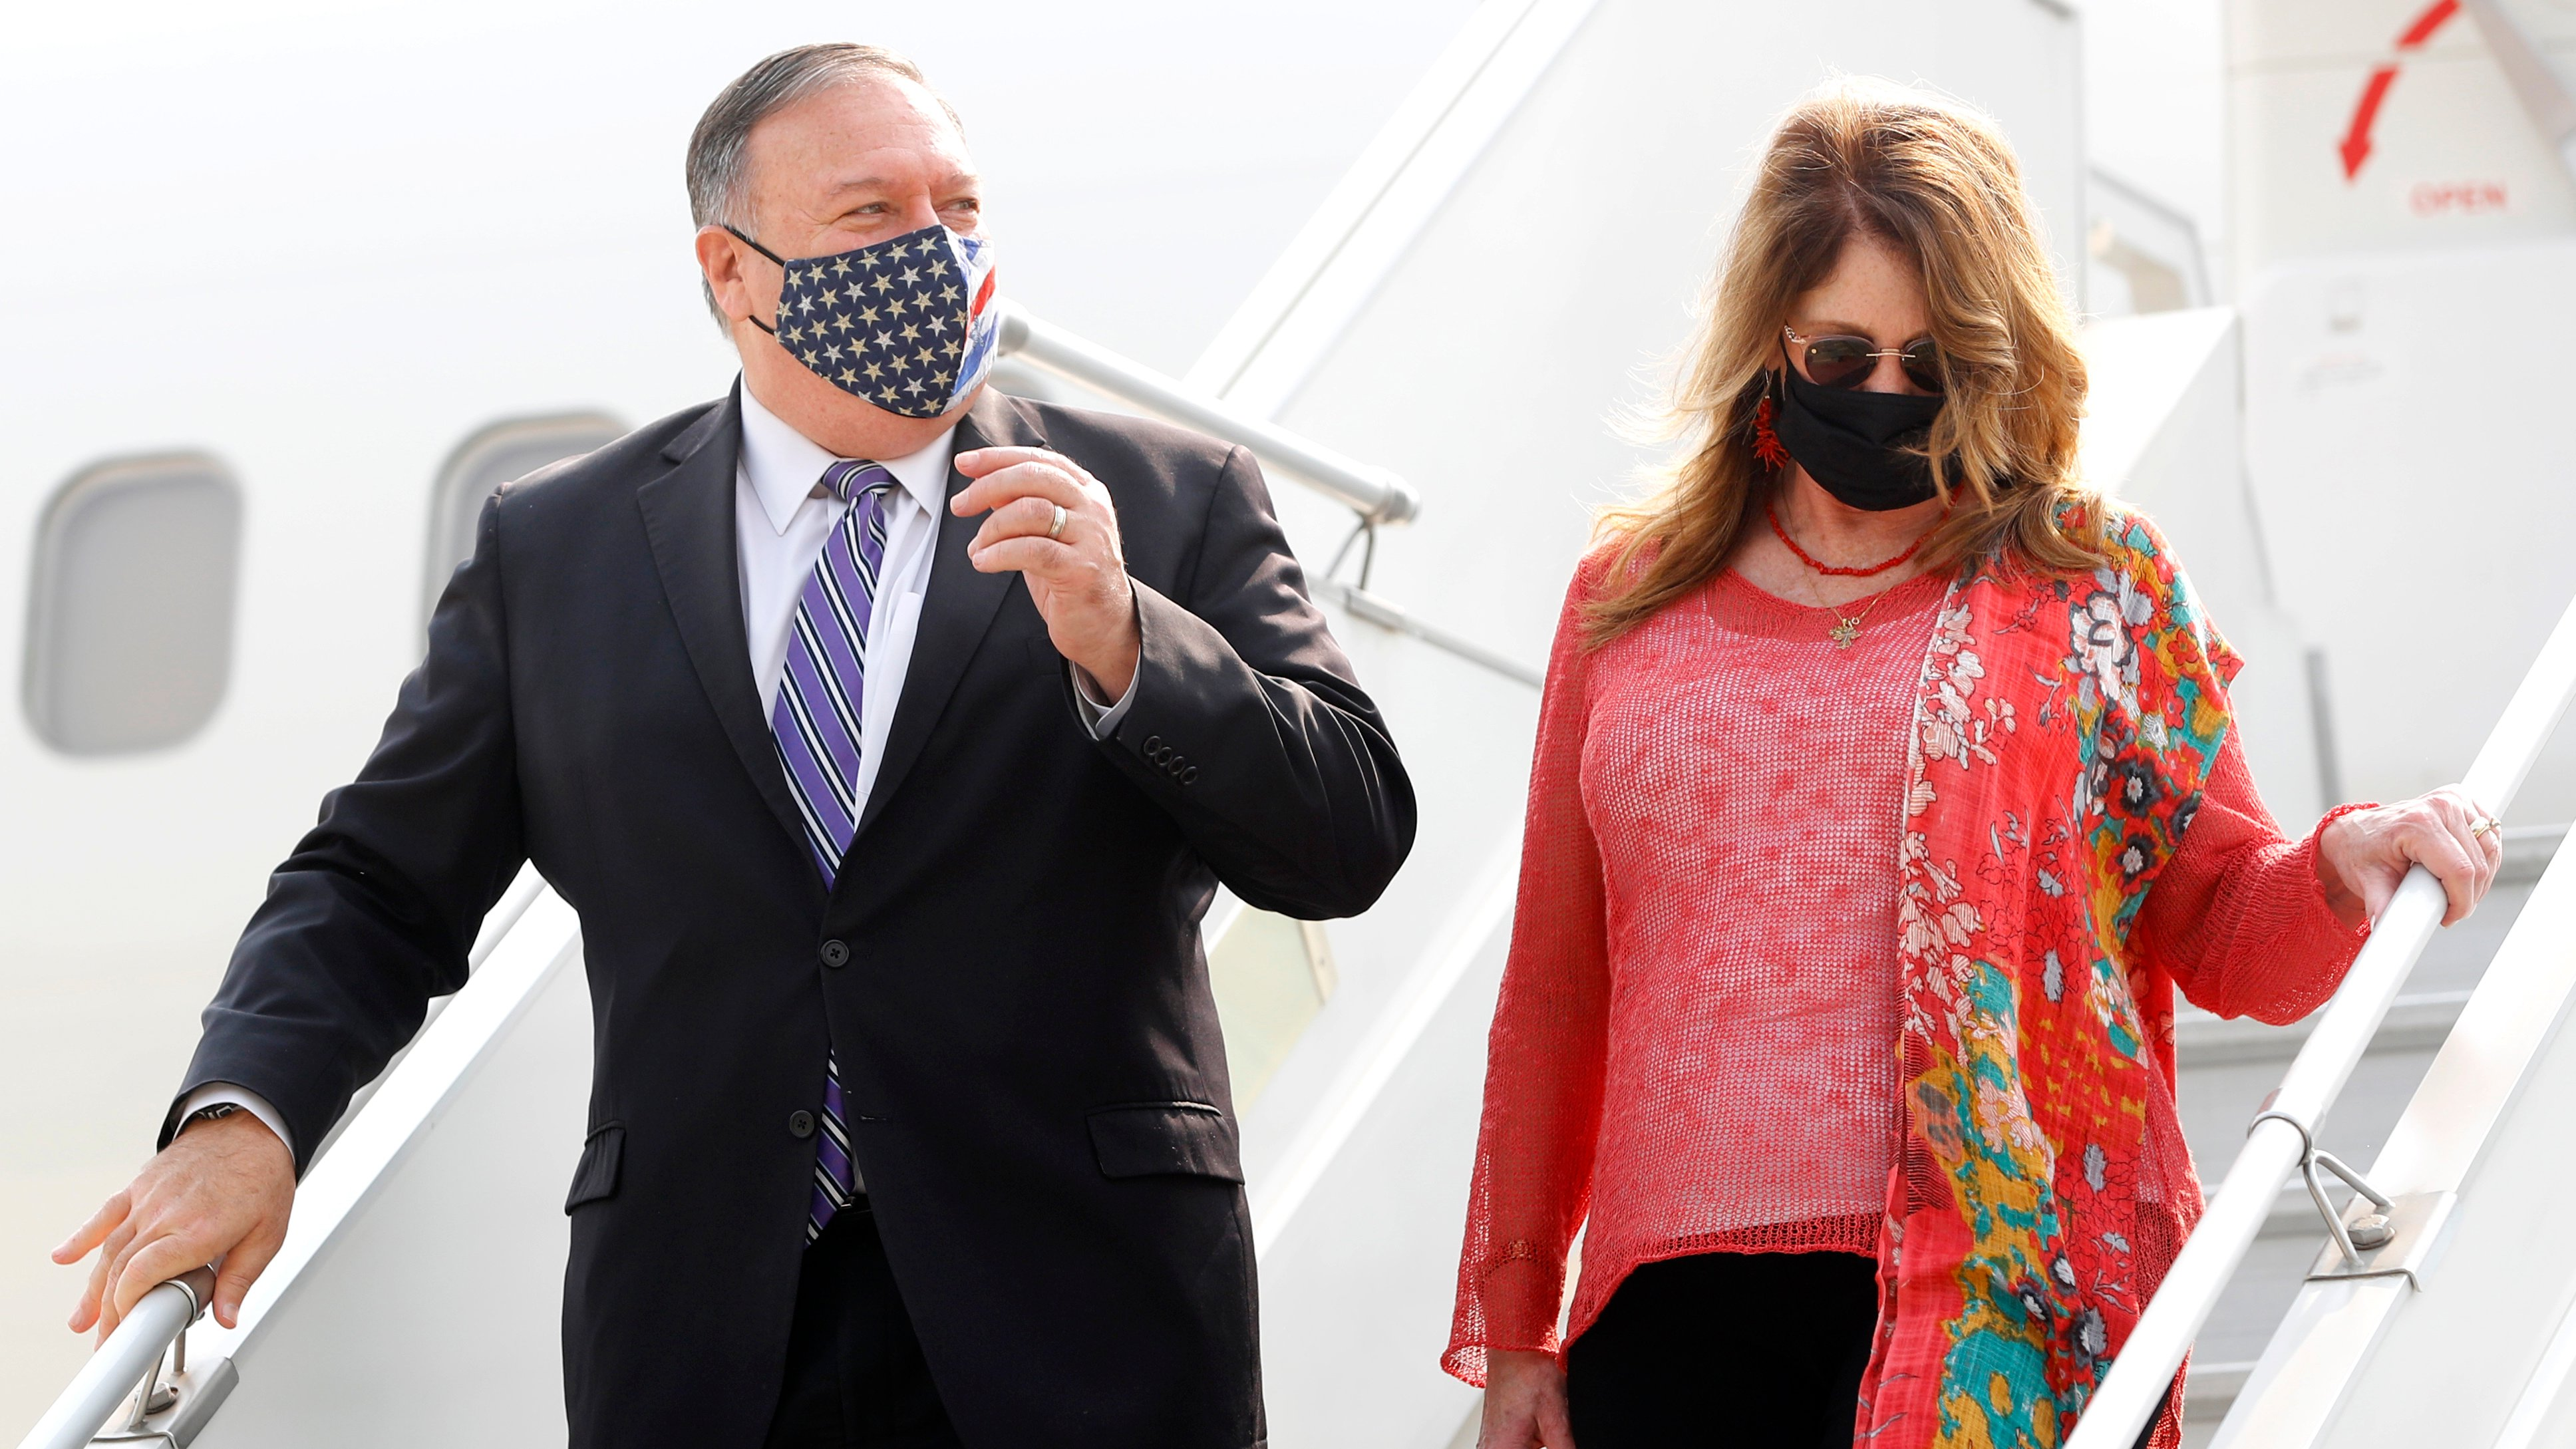 State Dept. Watchdog Says Pompeo, Wife Violated Ethics Rules – NBC 5 Dallas-Fort Worth